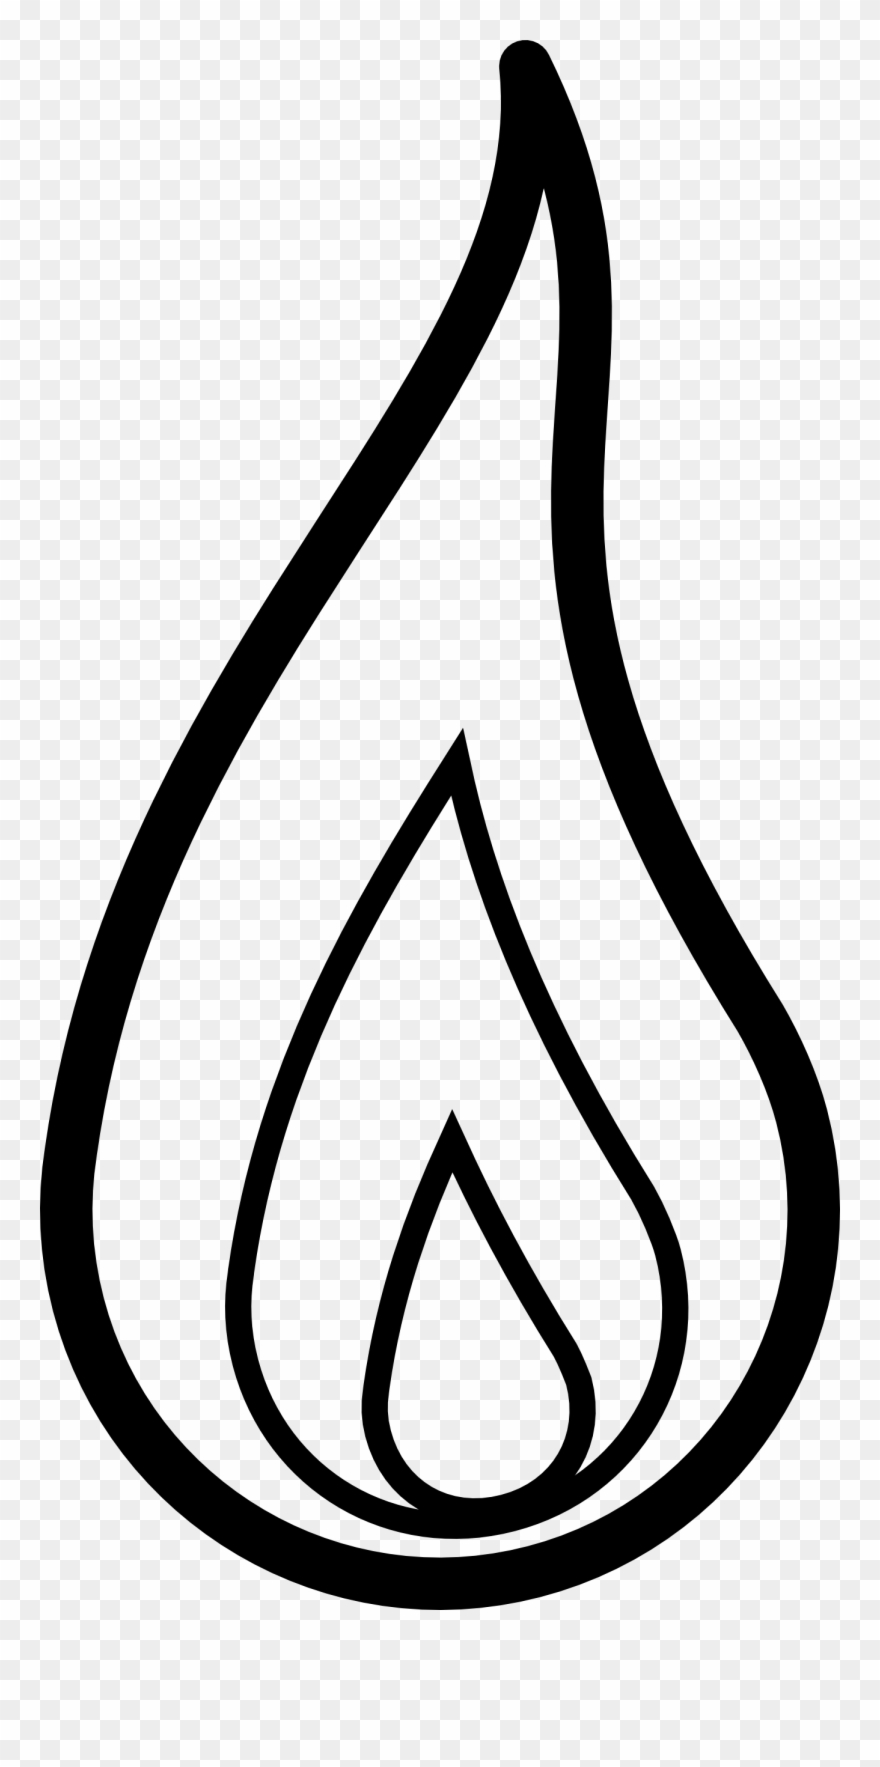 Fire clipart black and white in a line image transparent library Fire Flames Clipart Black And White Free Clipart - Clipart Flame ... image transparent library